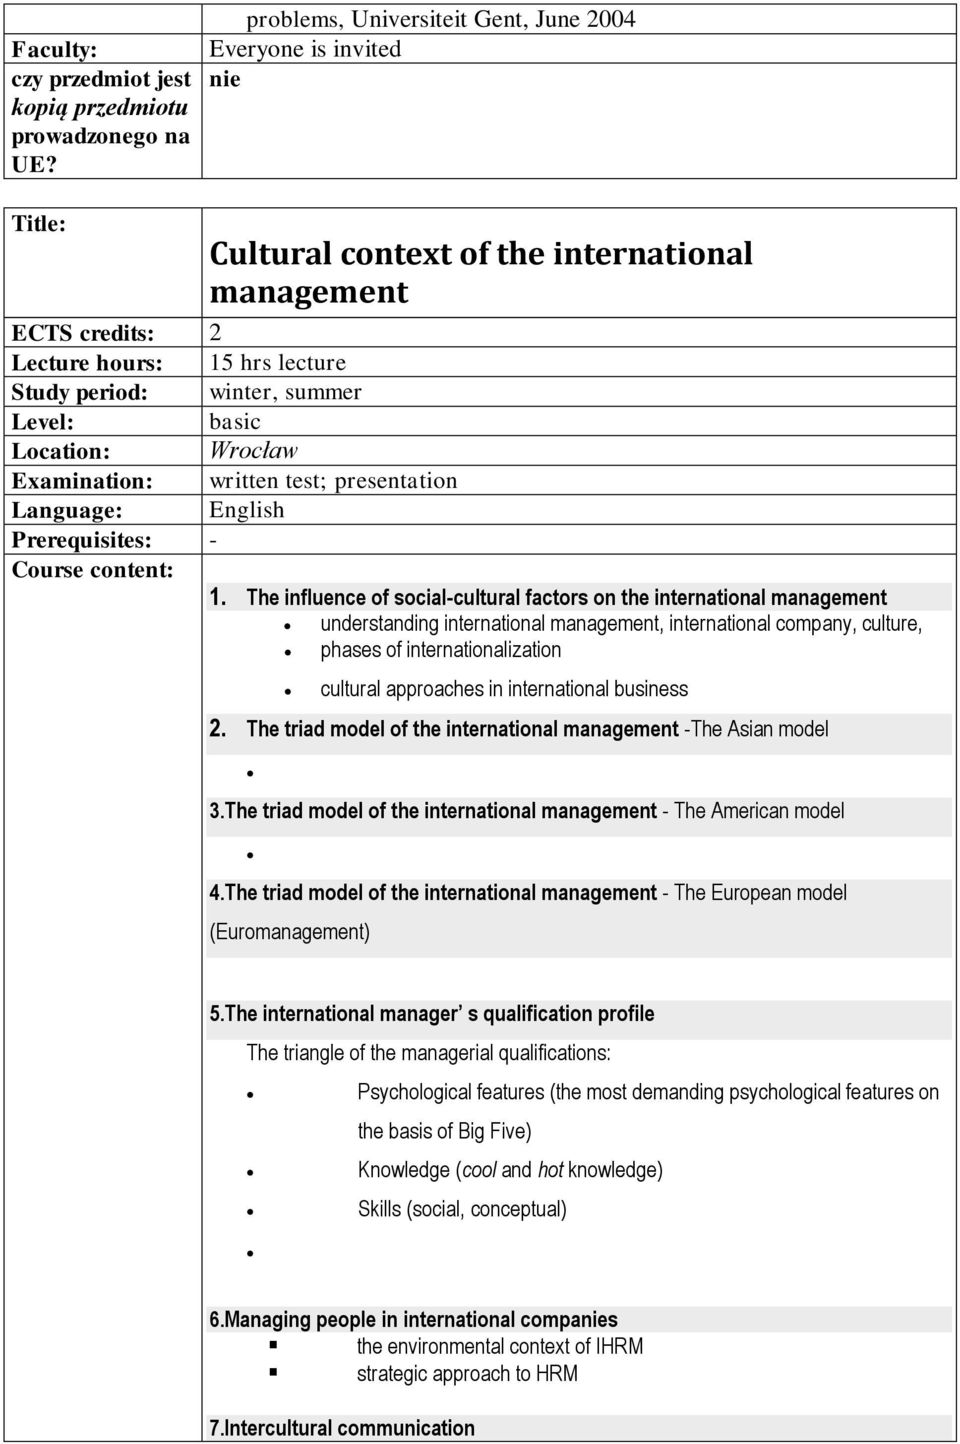 The influence of social-cultural factors on the international management understanding international management, international company, culture, phases of internationalization cultural approaches in